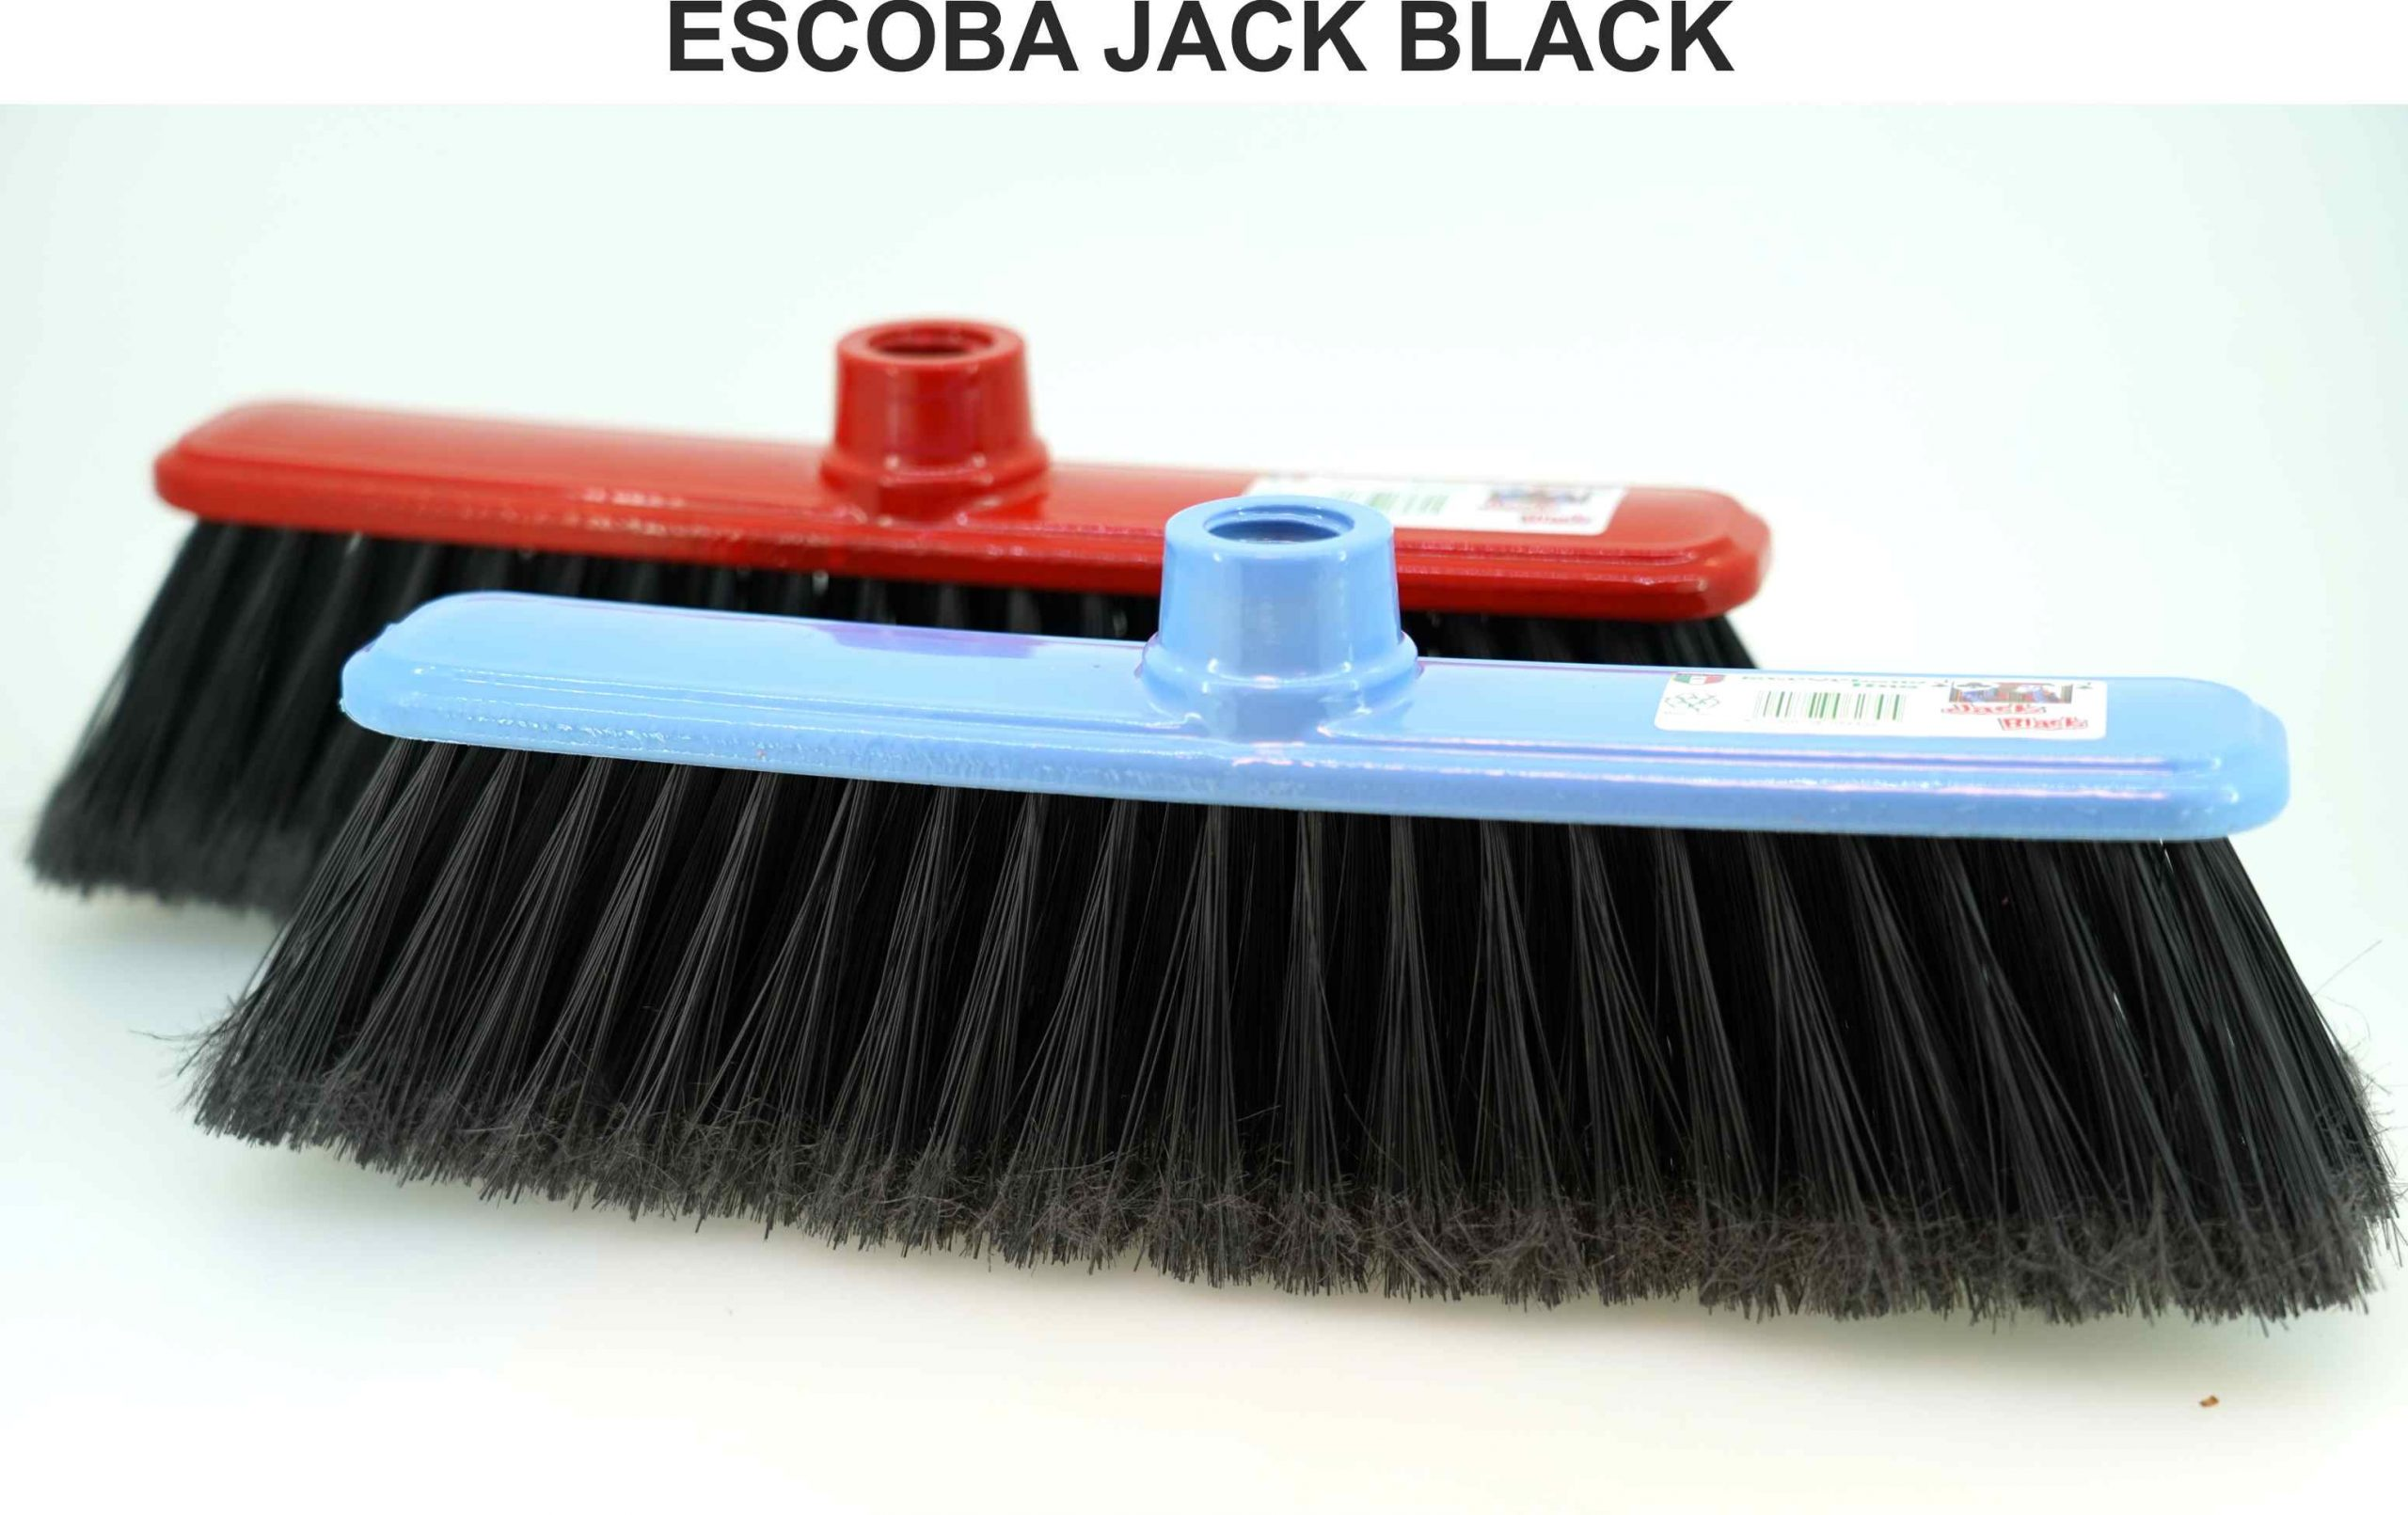 ESCOBA JACK BLACK